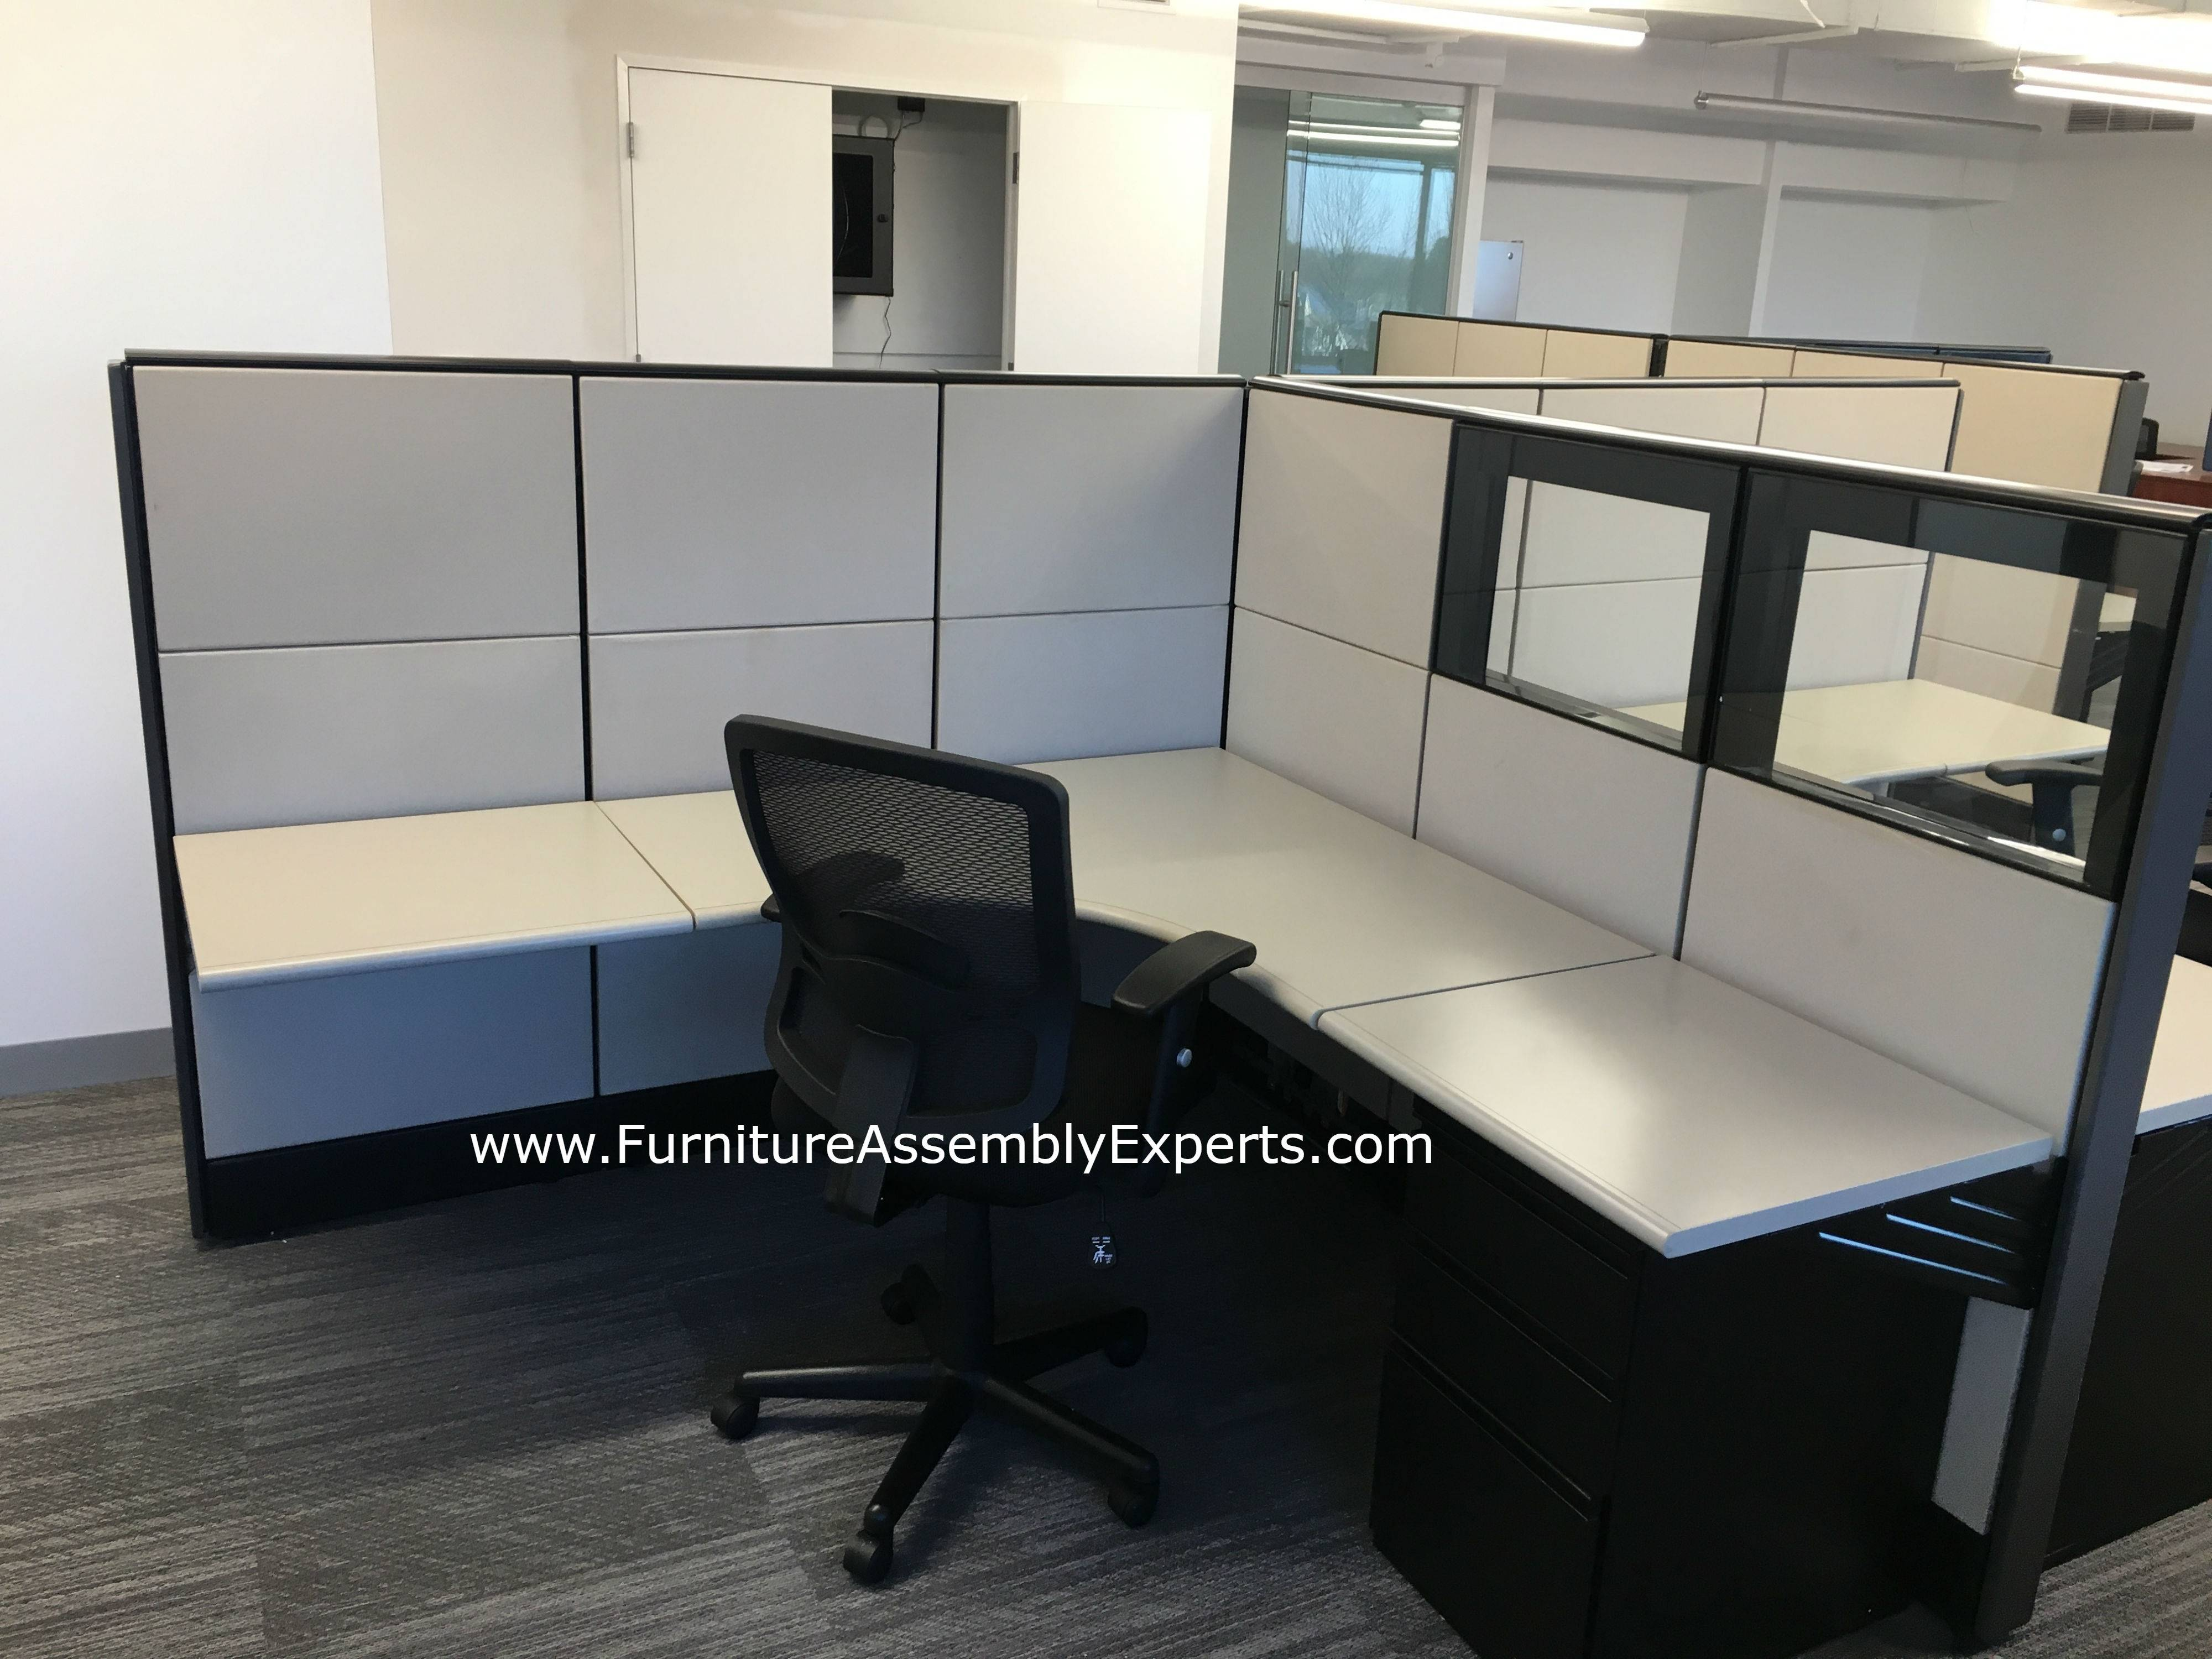 office cubicle installation service in beltsville MD